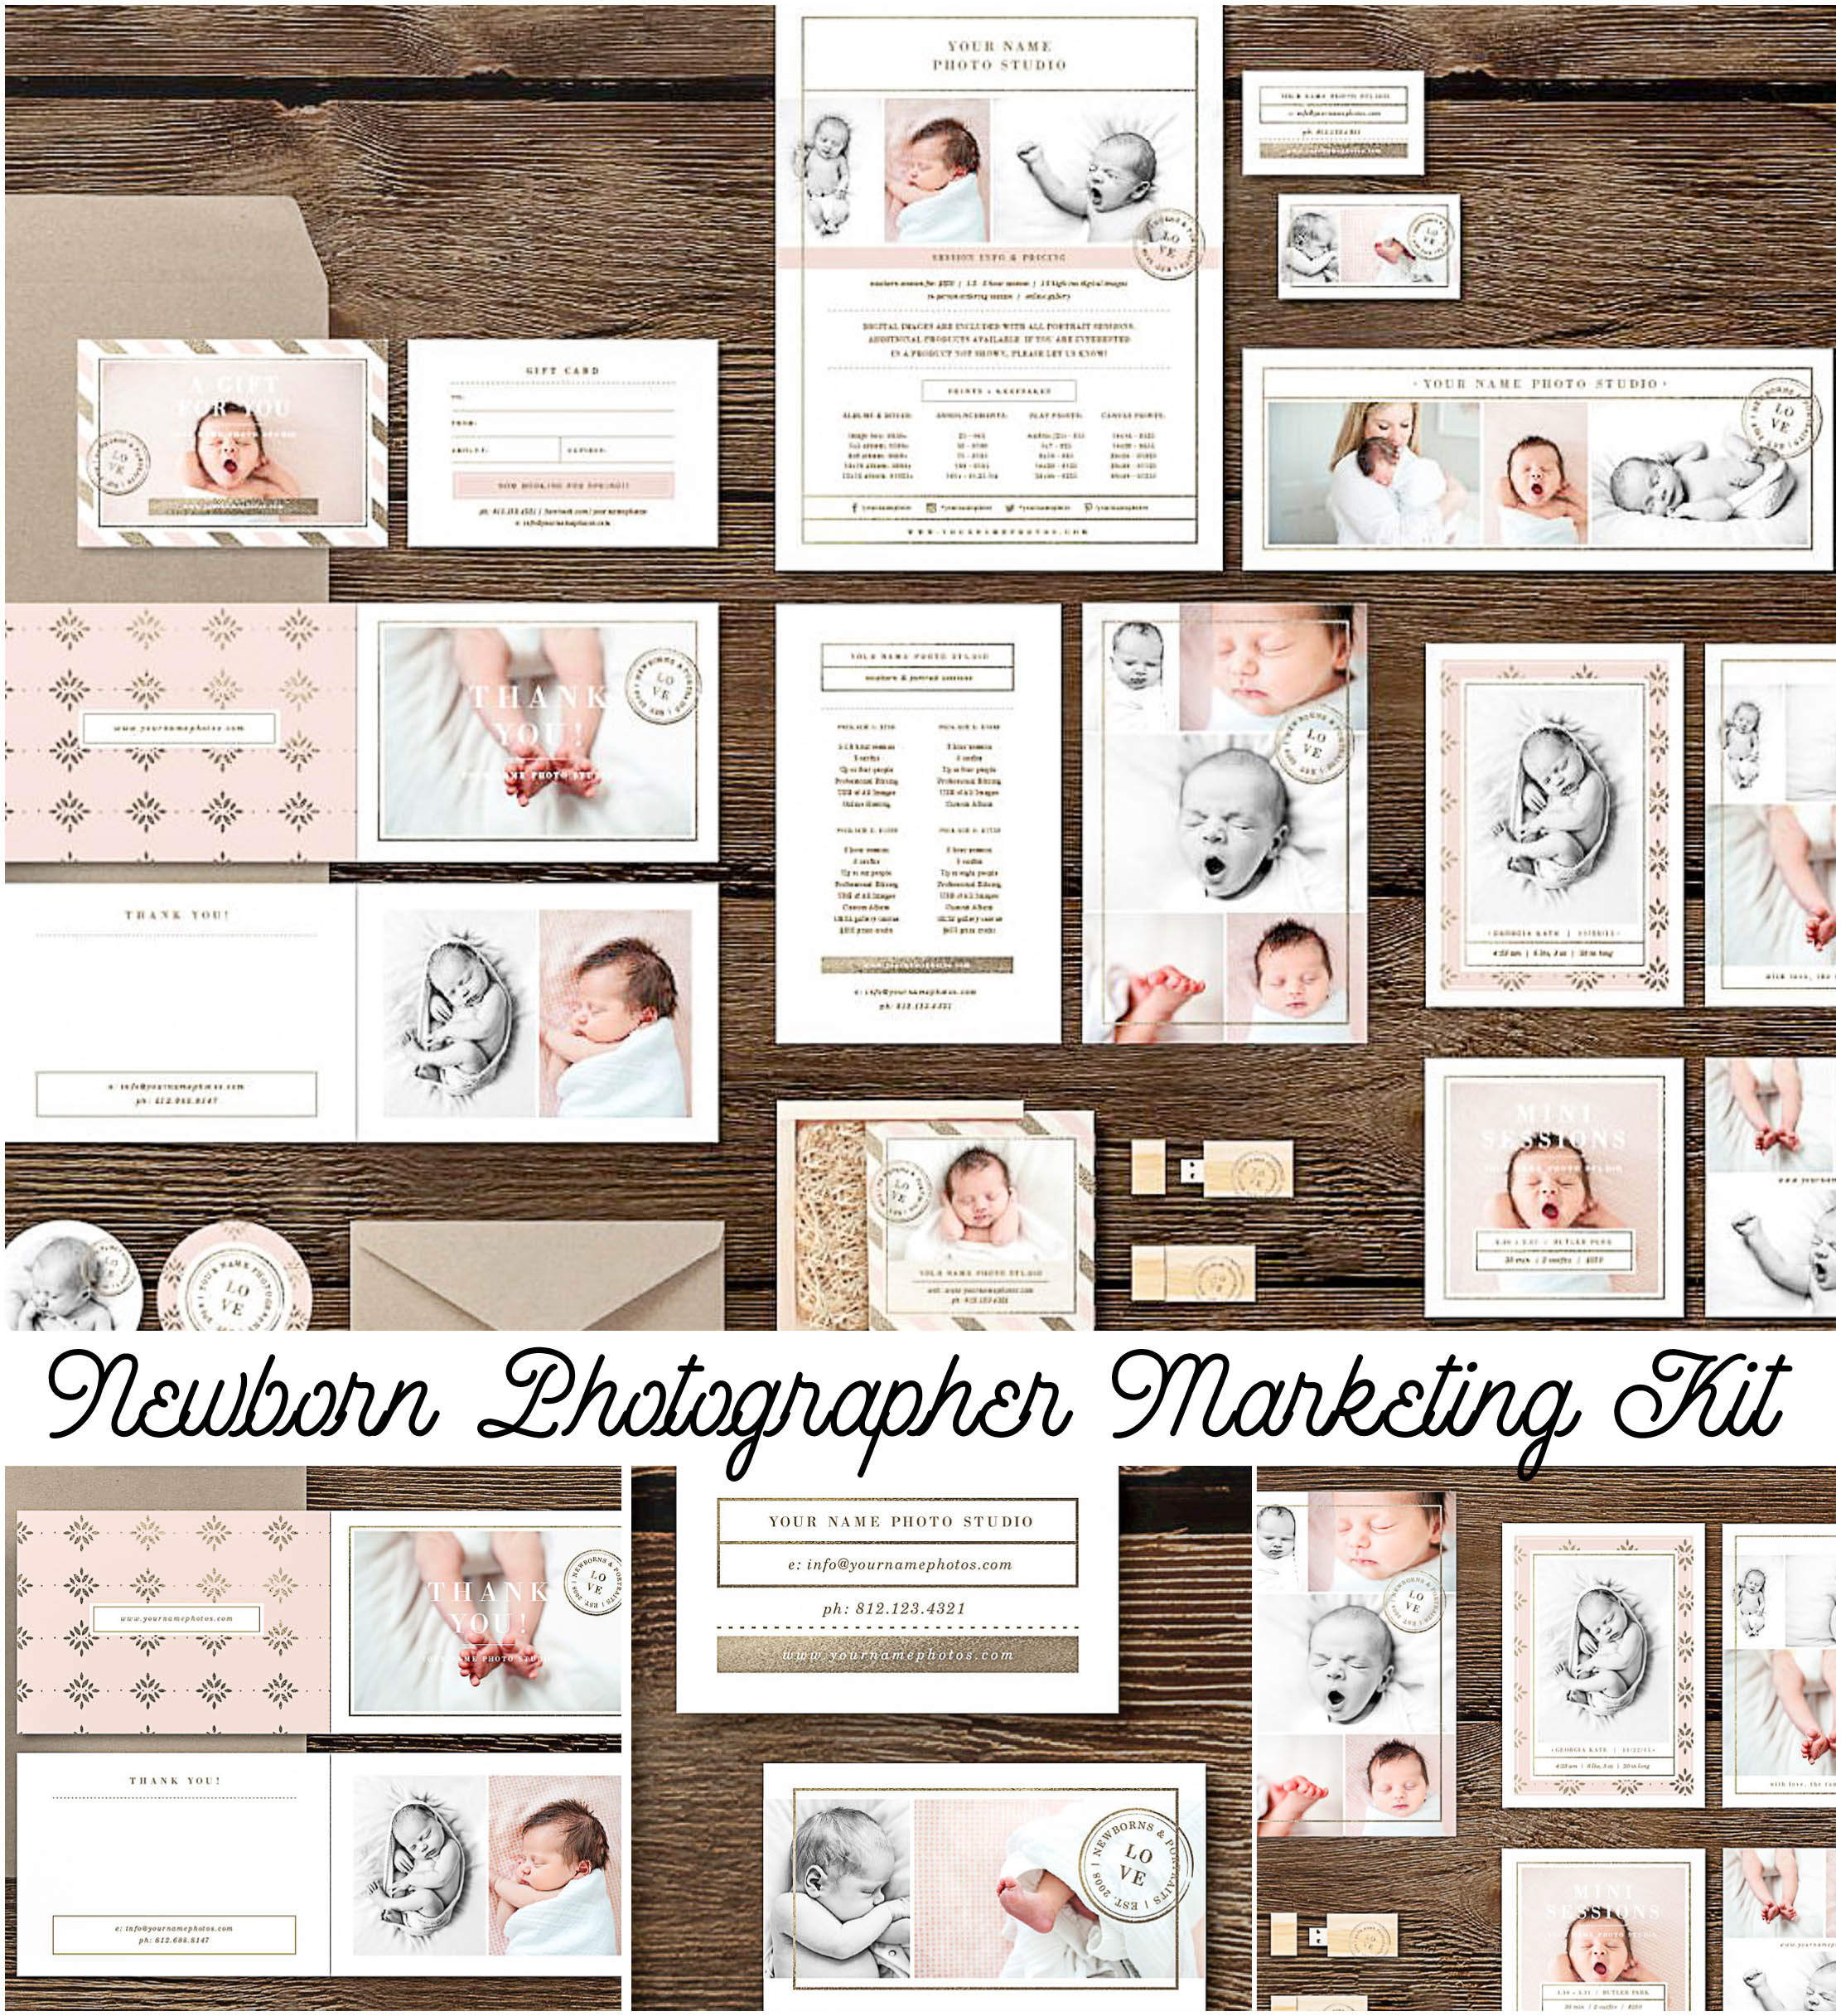 Newborn photography marketing kit